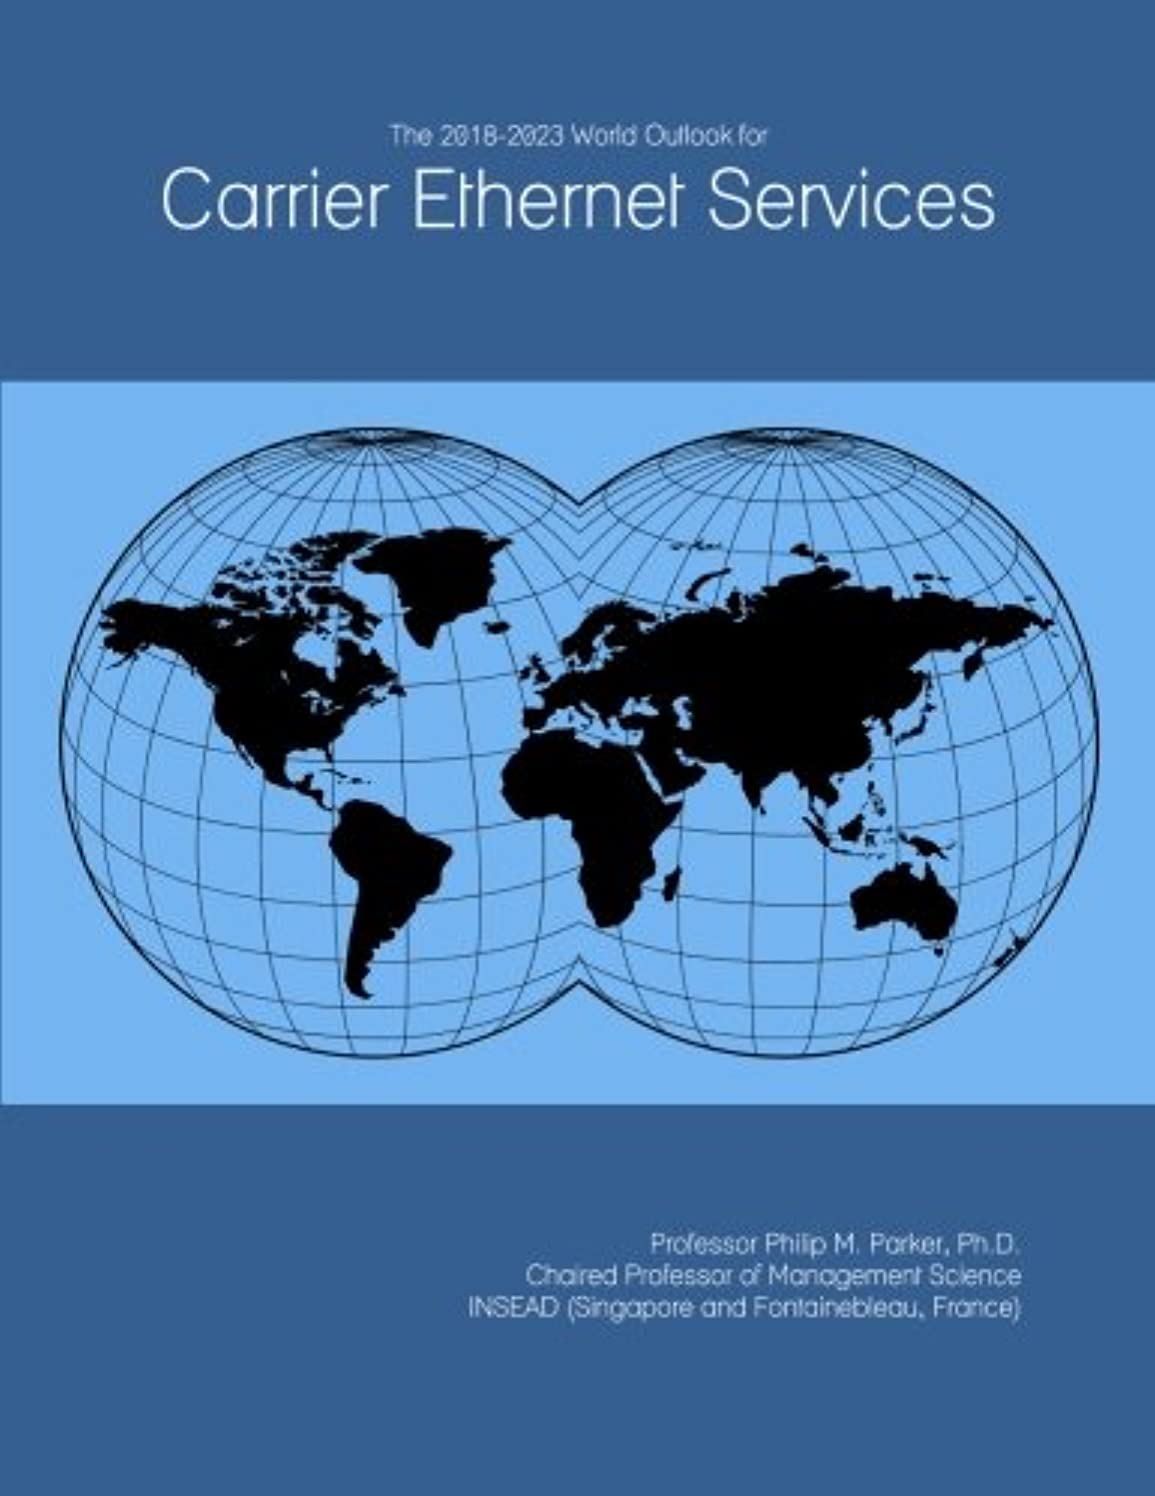 The 2018-2023 World Outlook for Carrier Ethernet Services